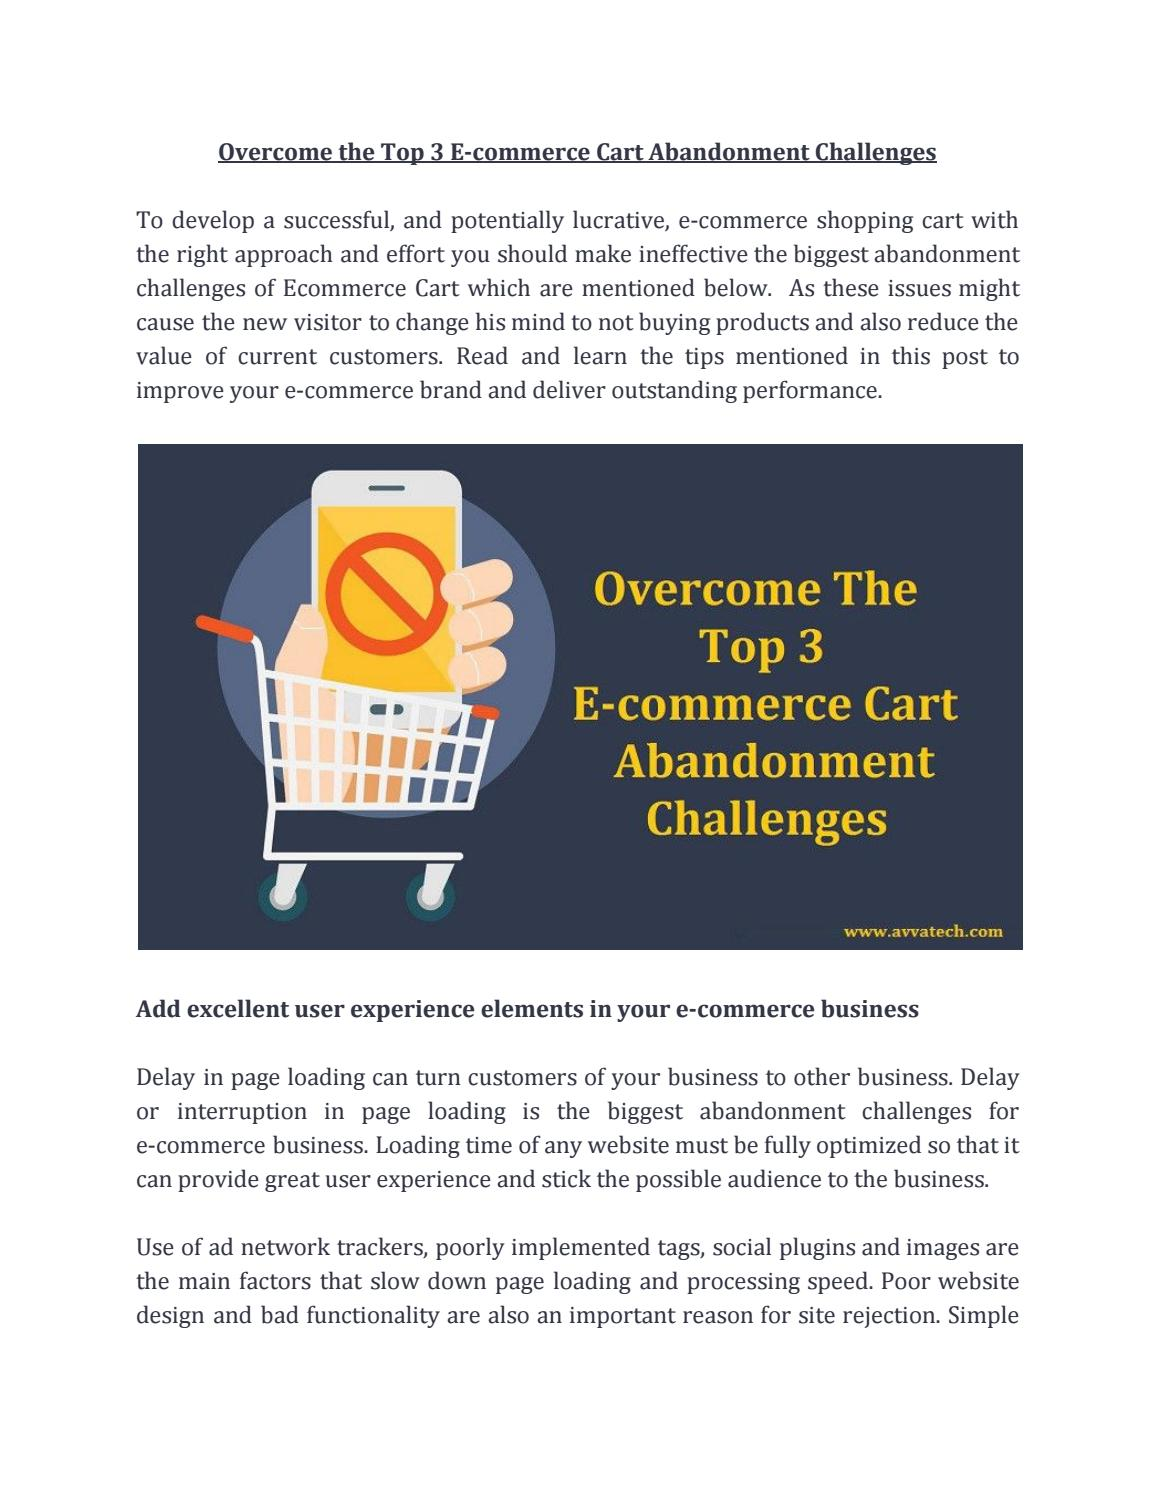 Overcome The Top 3 E Commerce Cart Abandonment Challenges By Avya Technology Pvt Ltd Issuu